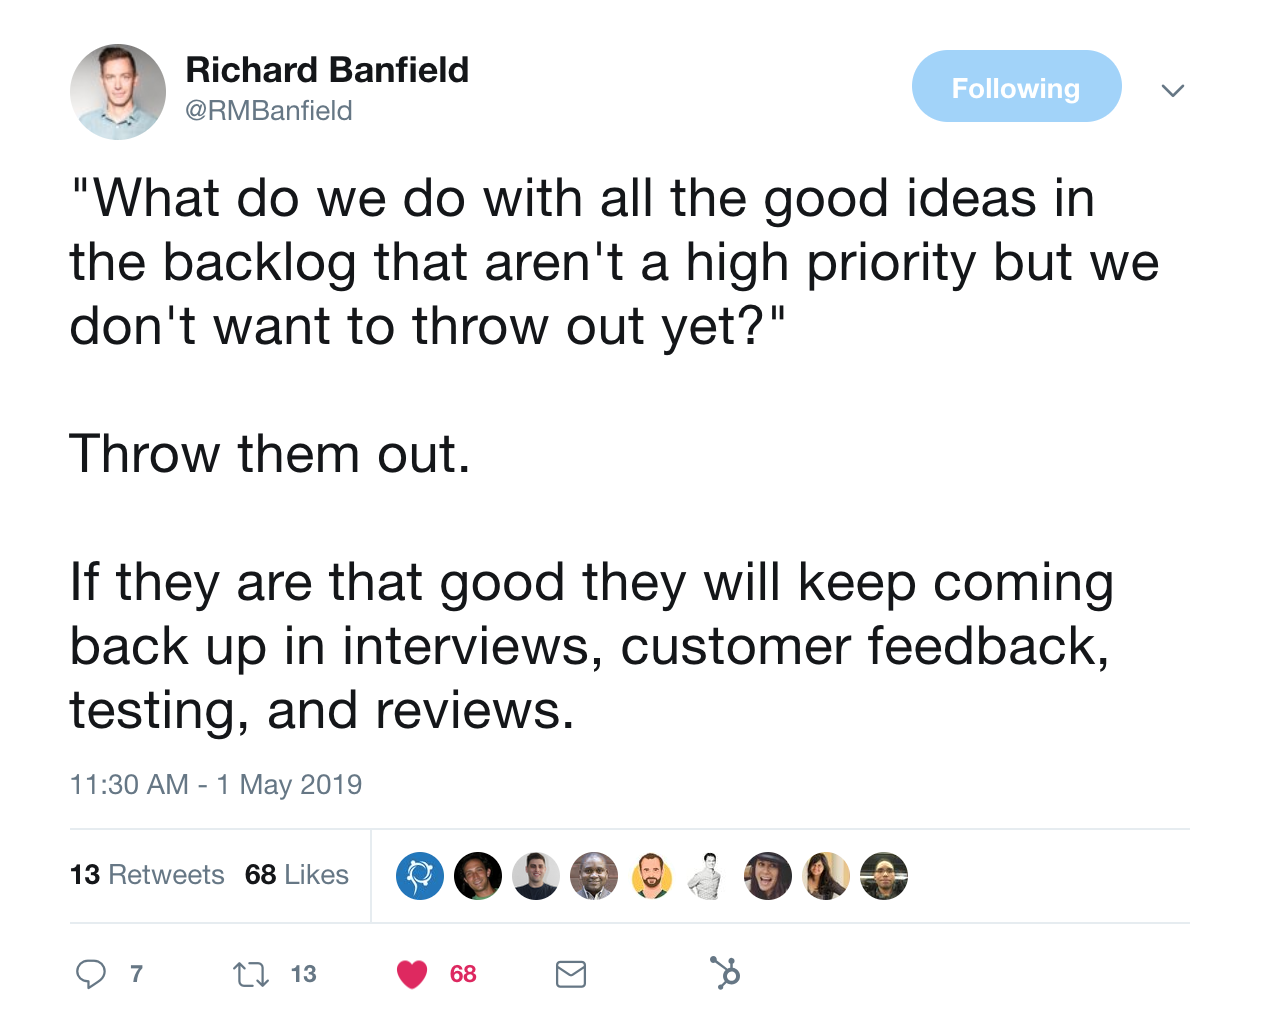 this is a tweet from richard banfield about what to do with good ideas that are kept on the backburner